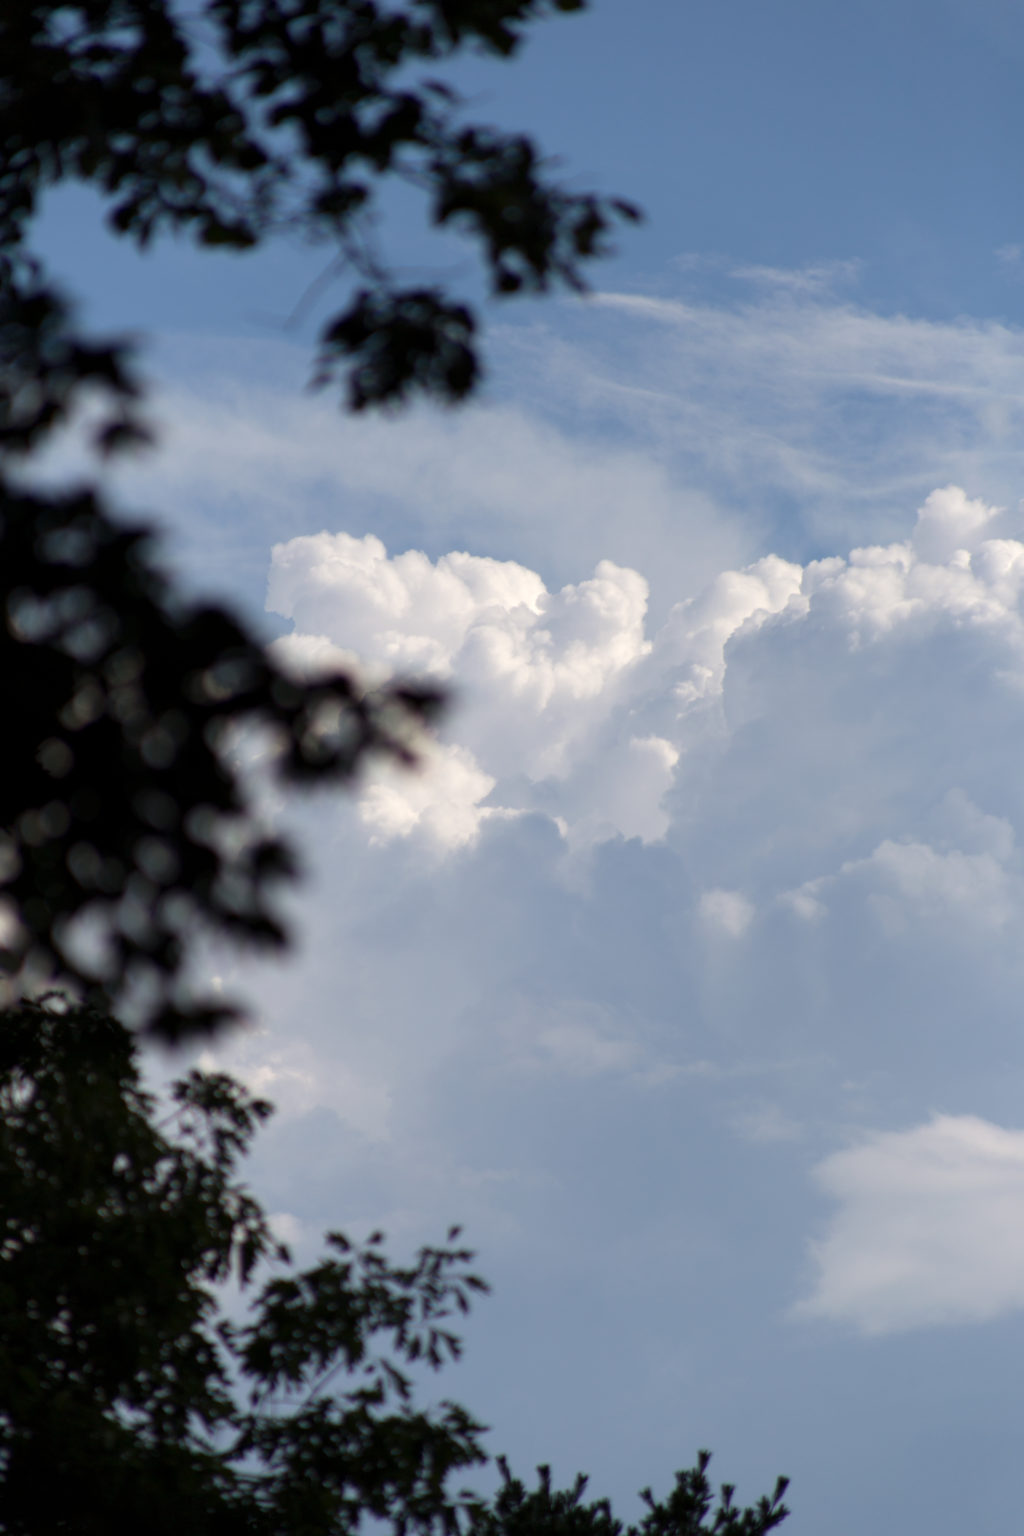 Puffy Clouds in the Distance